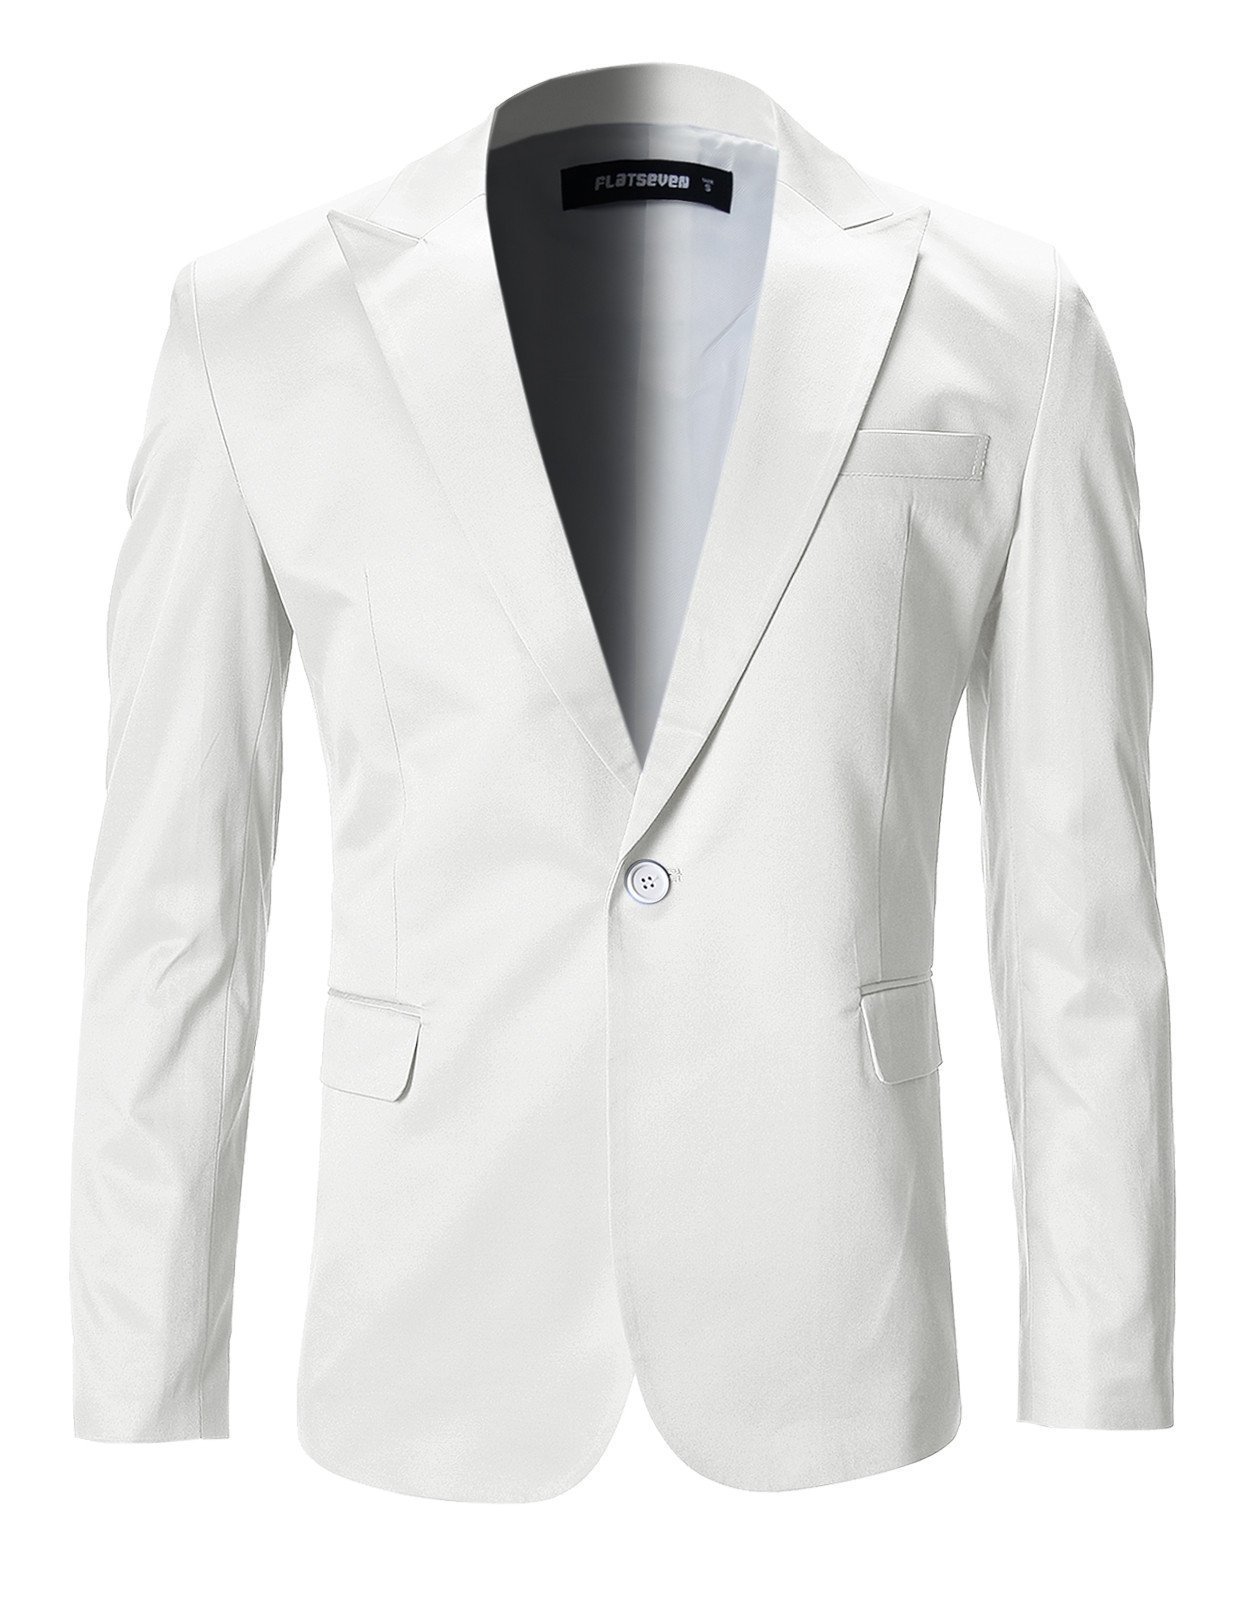 FLATSEVEN Mens Slim Fit Stylish Peaked Lapel Blazer Jacket (BJ200) White, XS